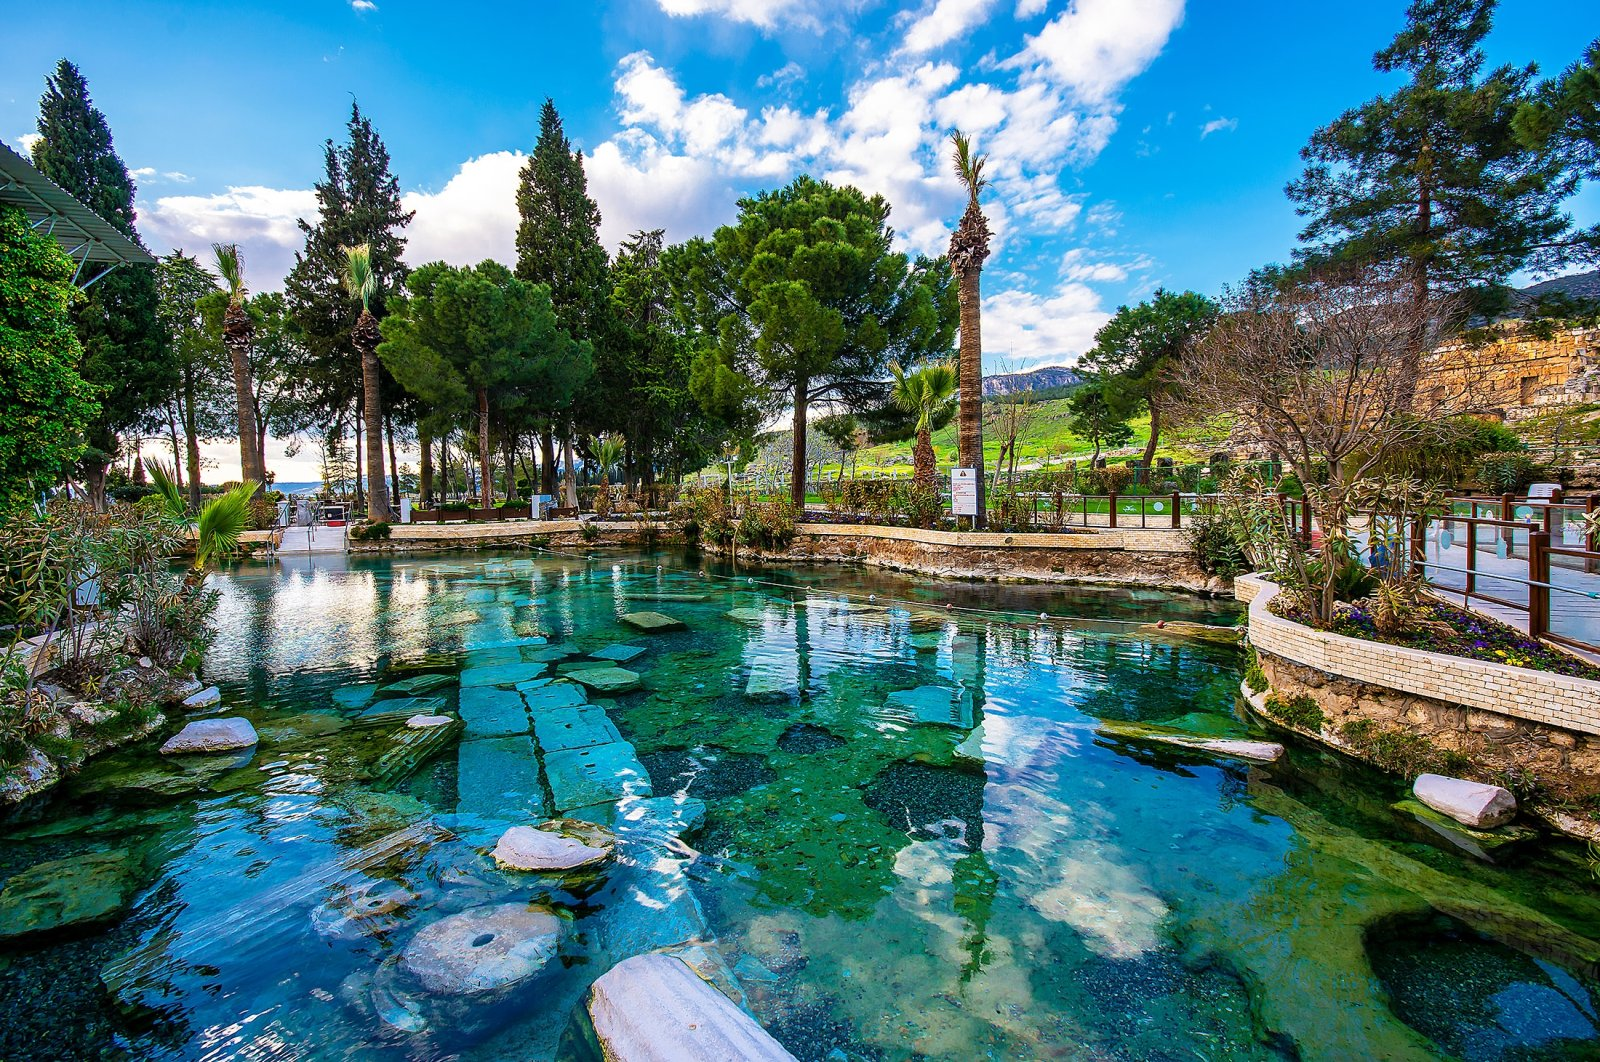 The thermal springs in Pamukkale. (Shutterstock Photo)